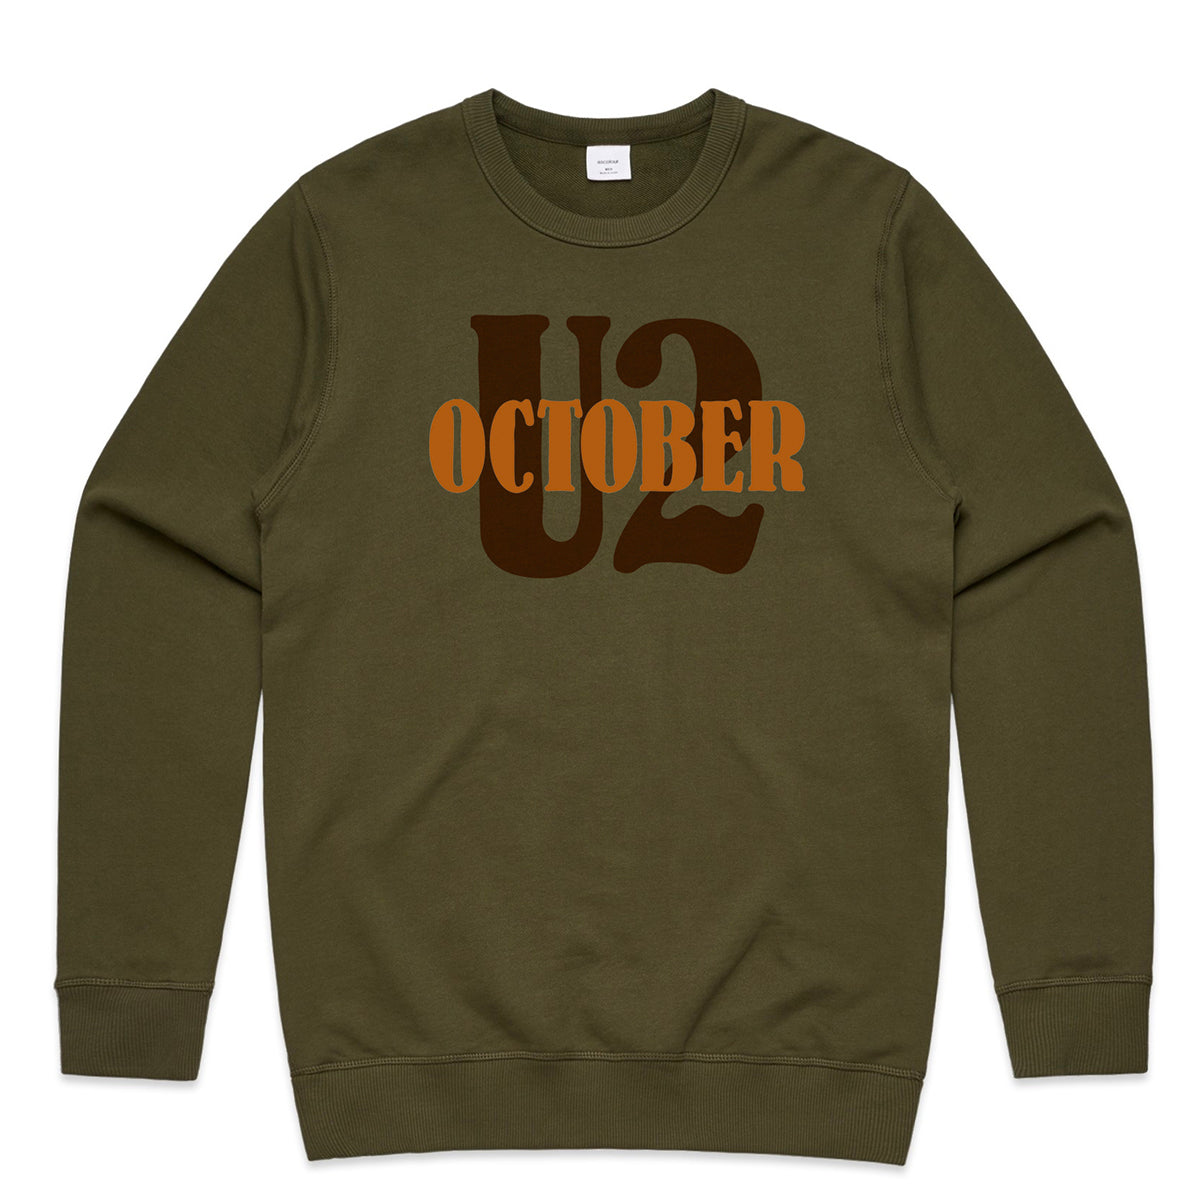 U2 October Khaki Sweatshirt